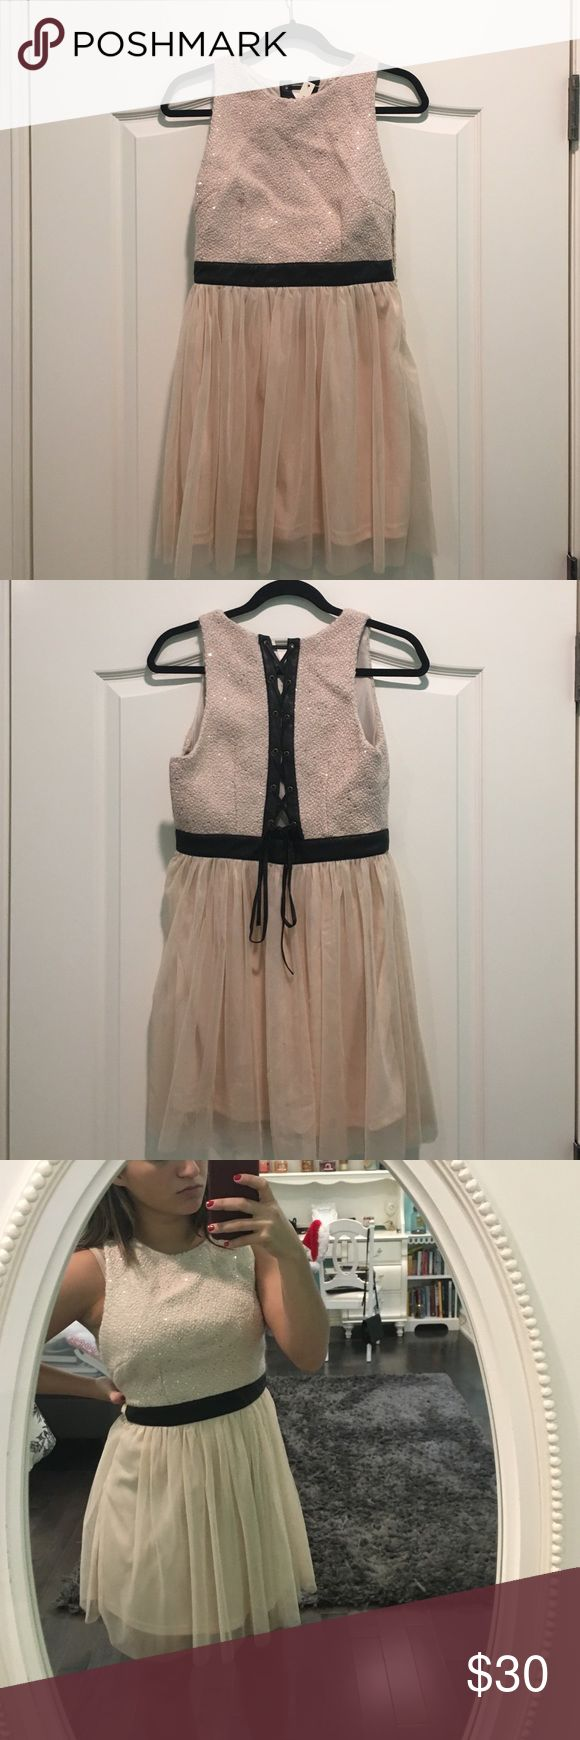 Light pink/Cream party dress NEW! Never worn and still with tags on it. The size is medium but it fits like a small! The material of the black belt and black lace up in the back is leather. Great dress for any special occasion and looks perfect with black shoes and a black bag to match! Mustard Seed Dresses